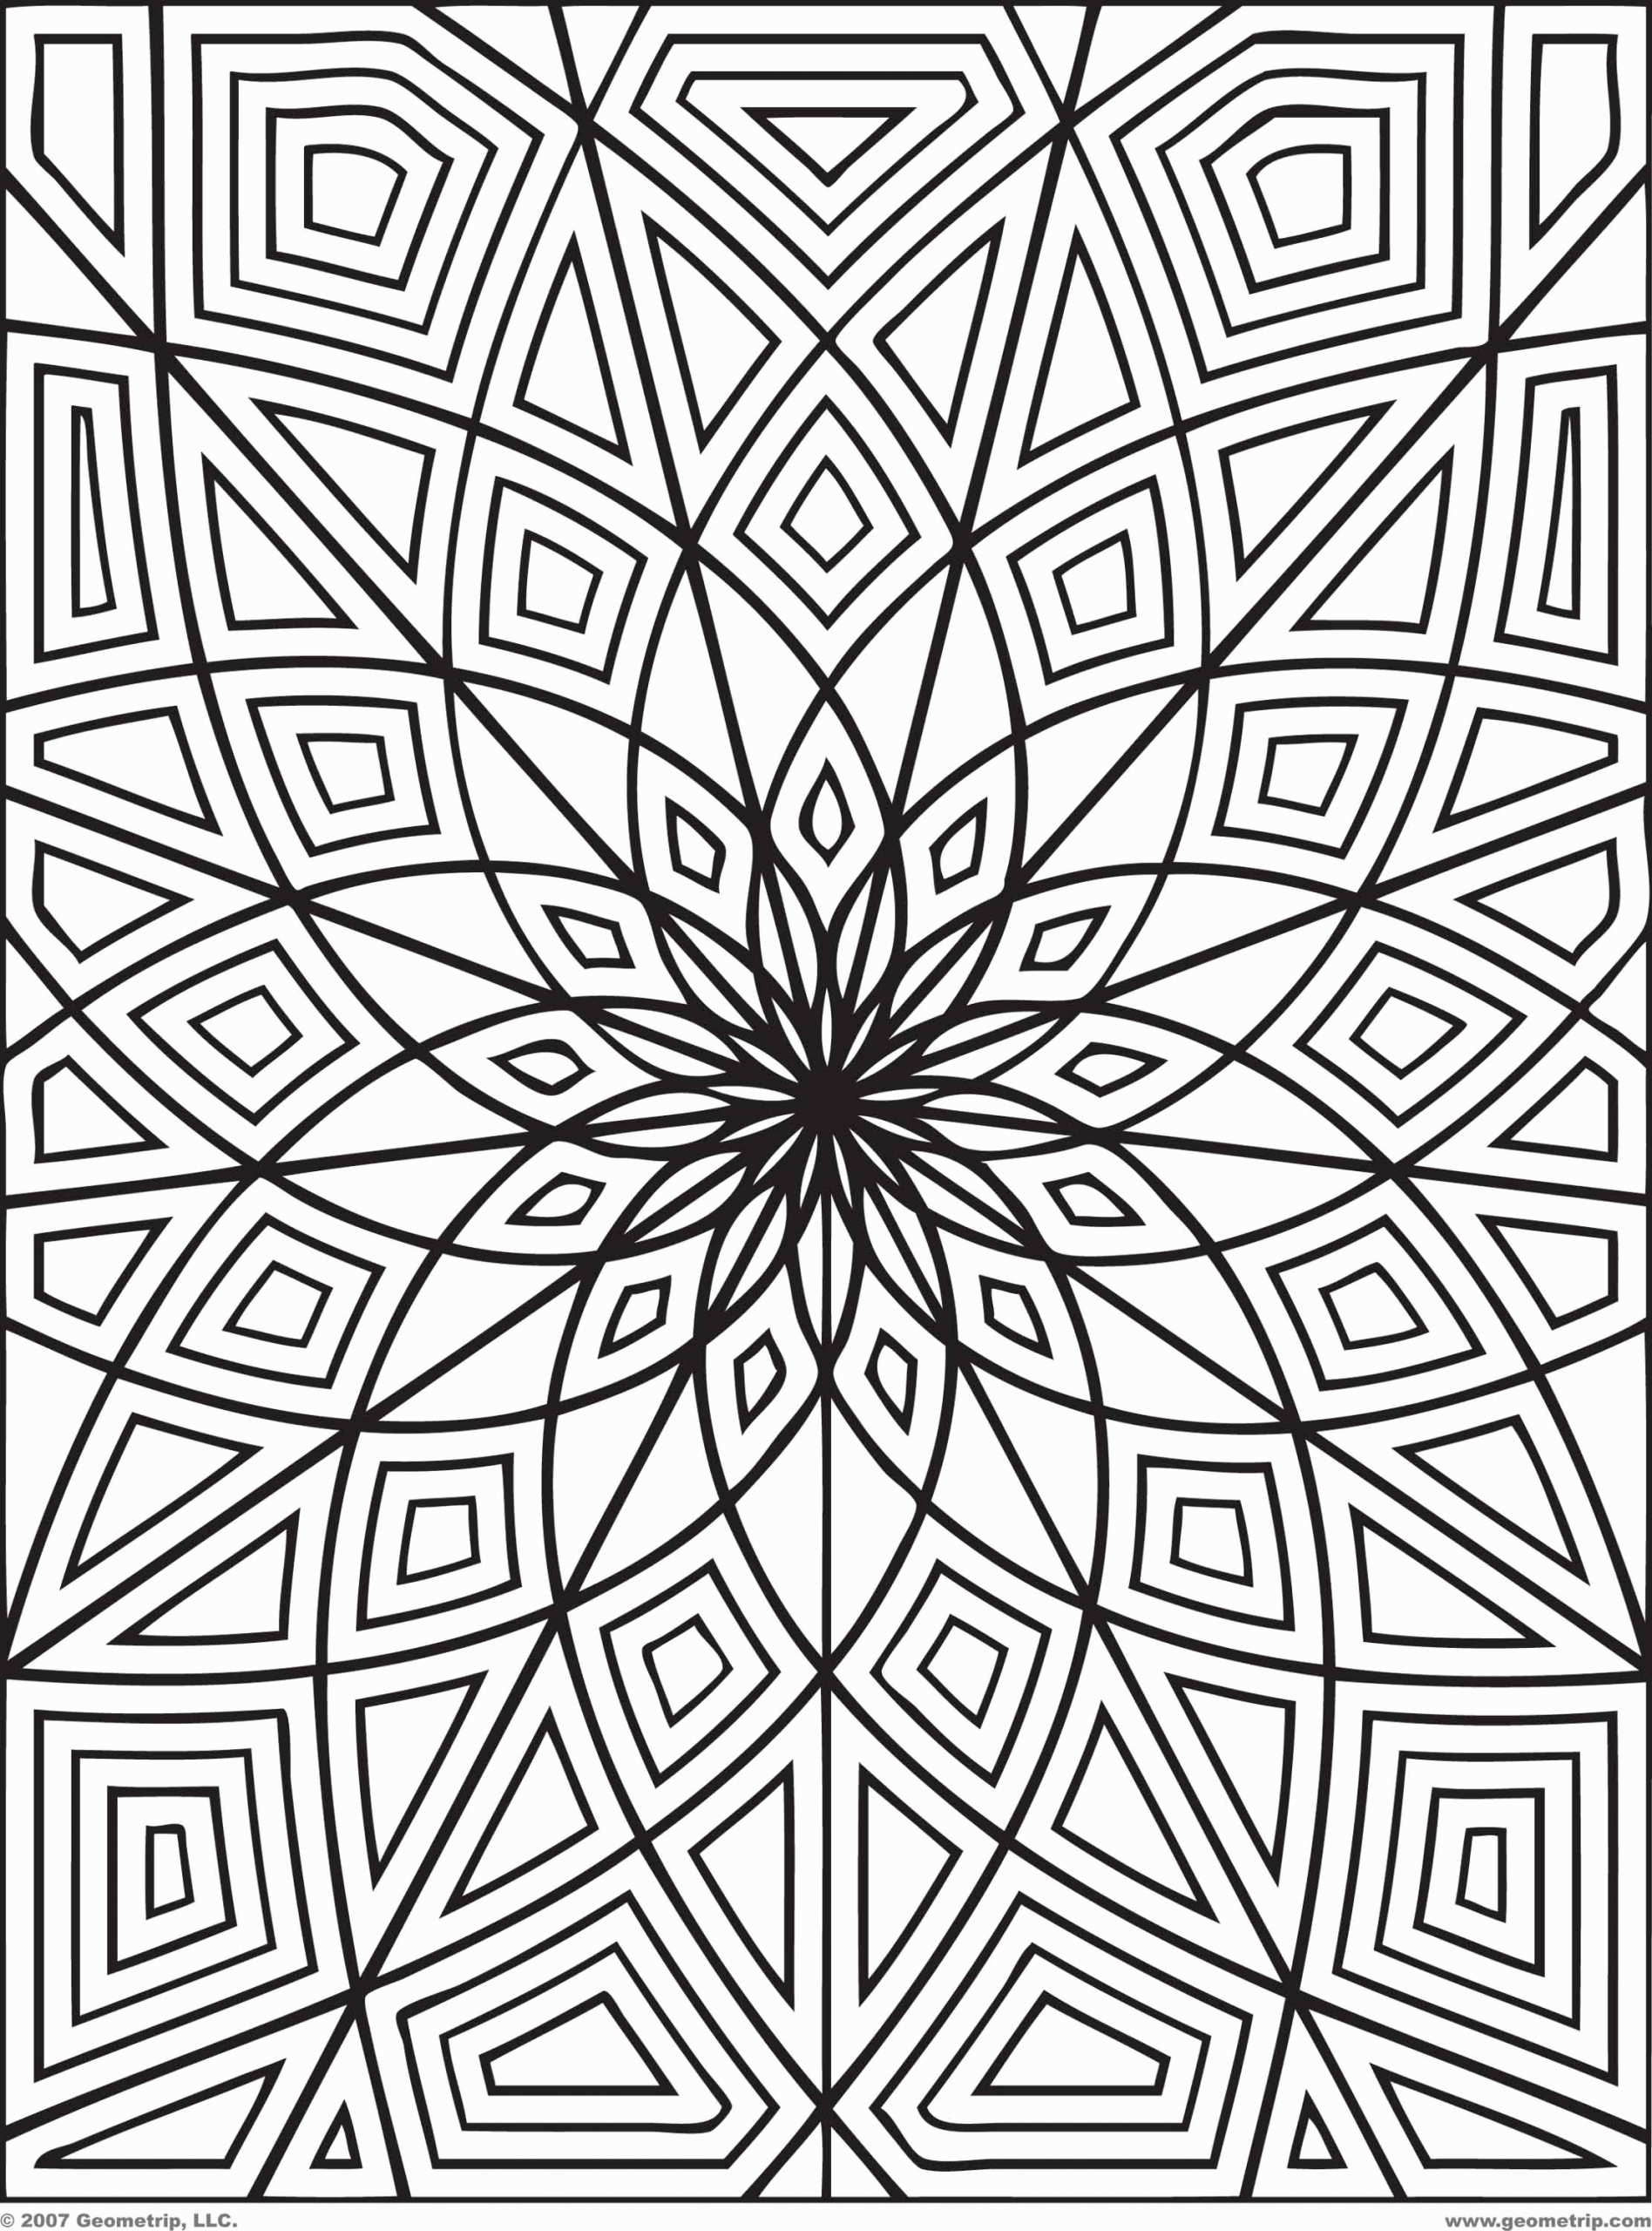 Middle School Coloring Pages : middle, school, coloring, pages, Detailed, Coloring, Pages, Geometric, Pages,, Abstract